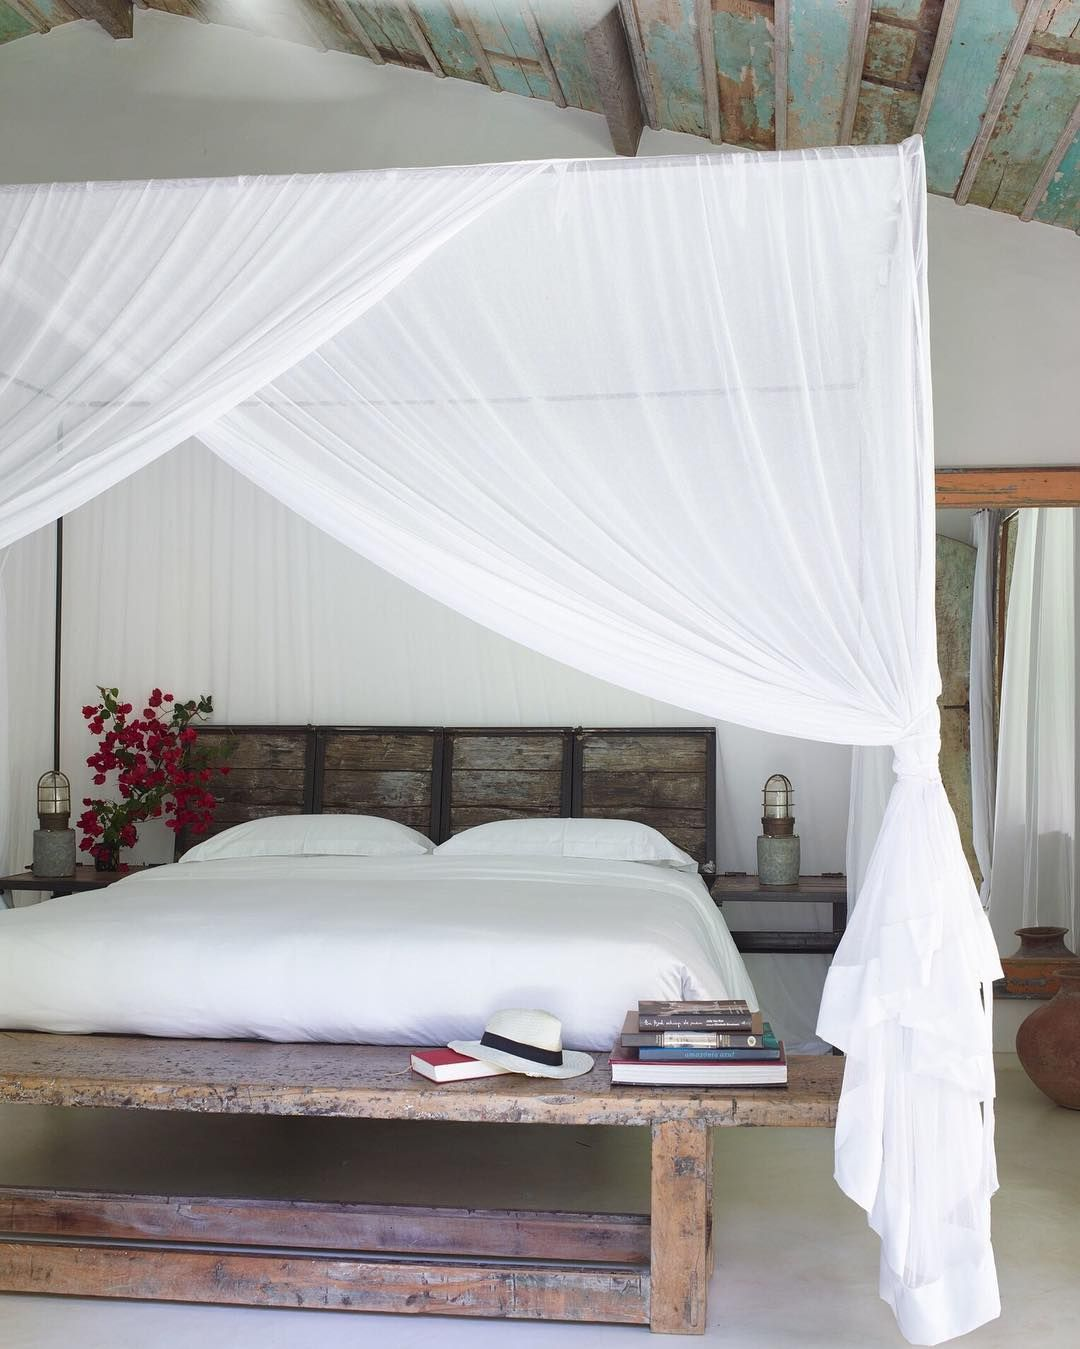 Rustic and coastal bedroom inspiration. Love the curtained